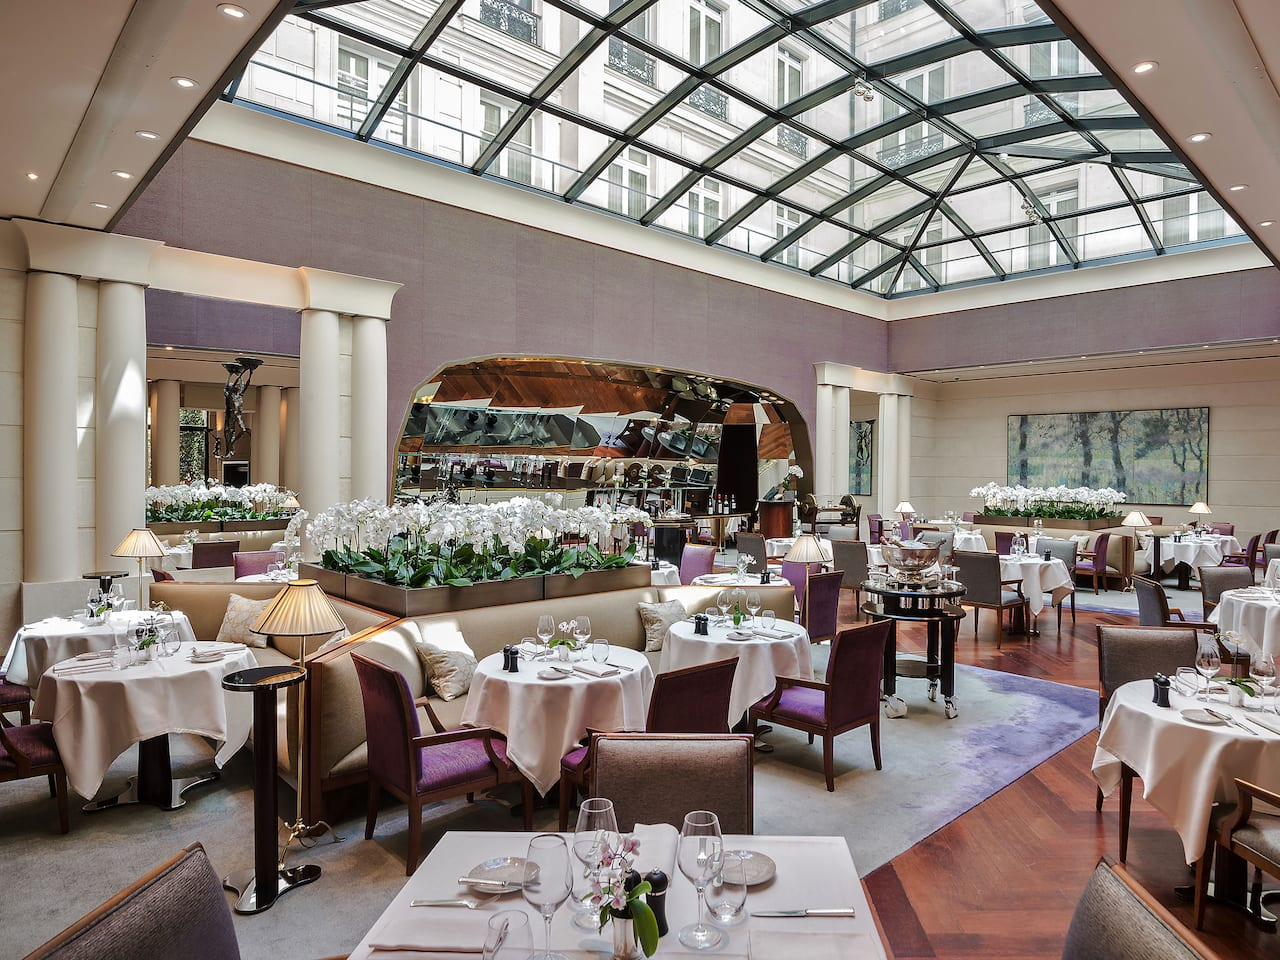 Sens Bistronomic Restaurant at Hotel Park Hyatt Paris-Vendôme